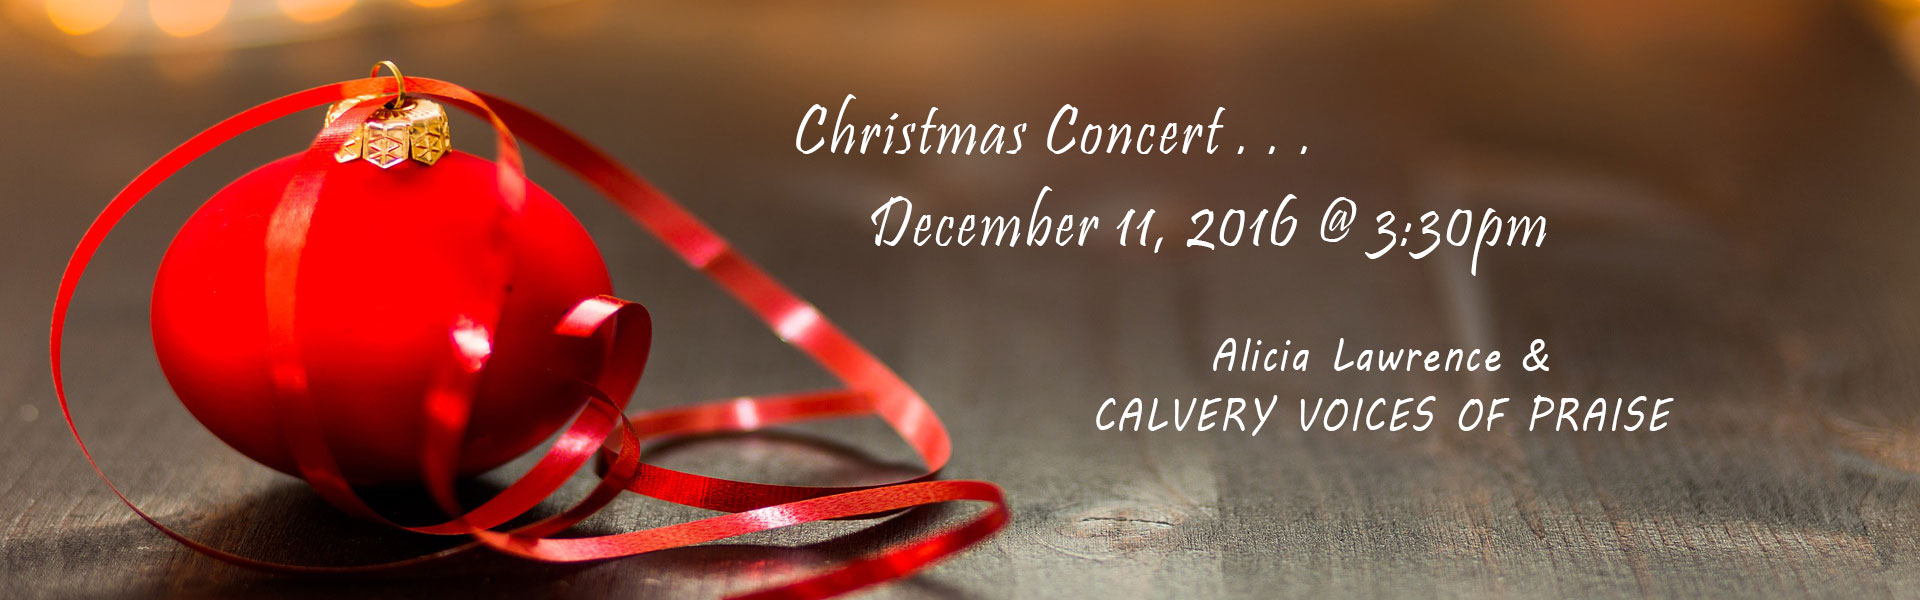 Alicia Lawrence and Calvary Voices of Praise + Christmas Concert in Inglewood, California + Los Angeles County